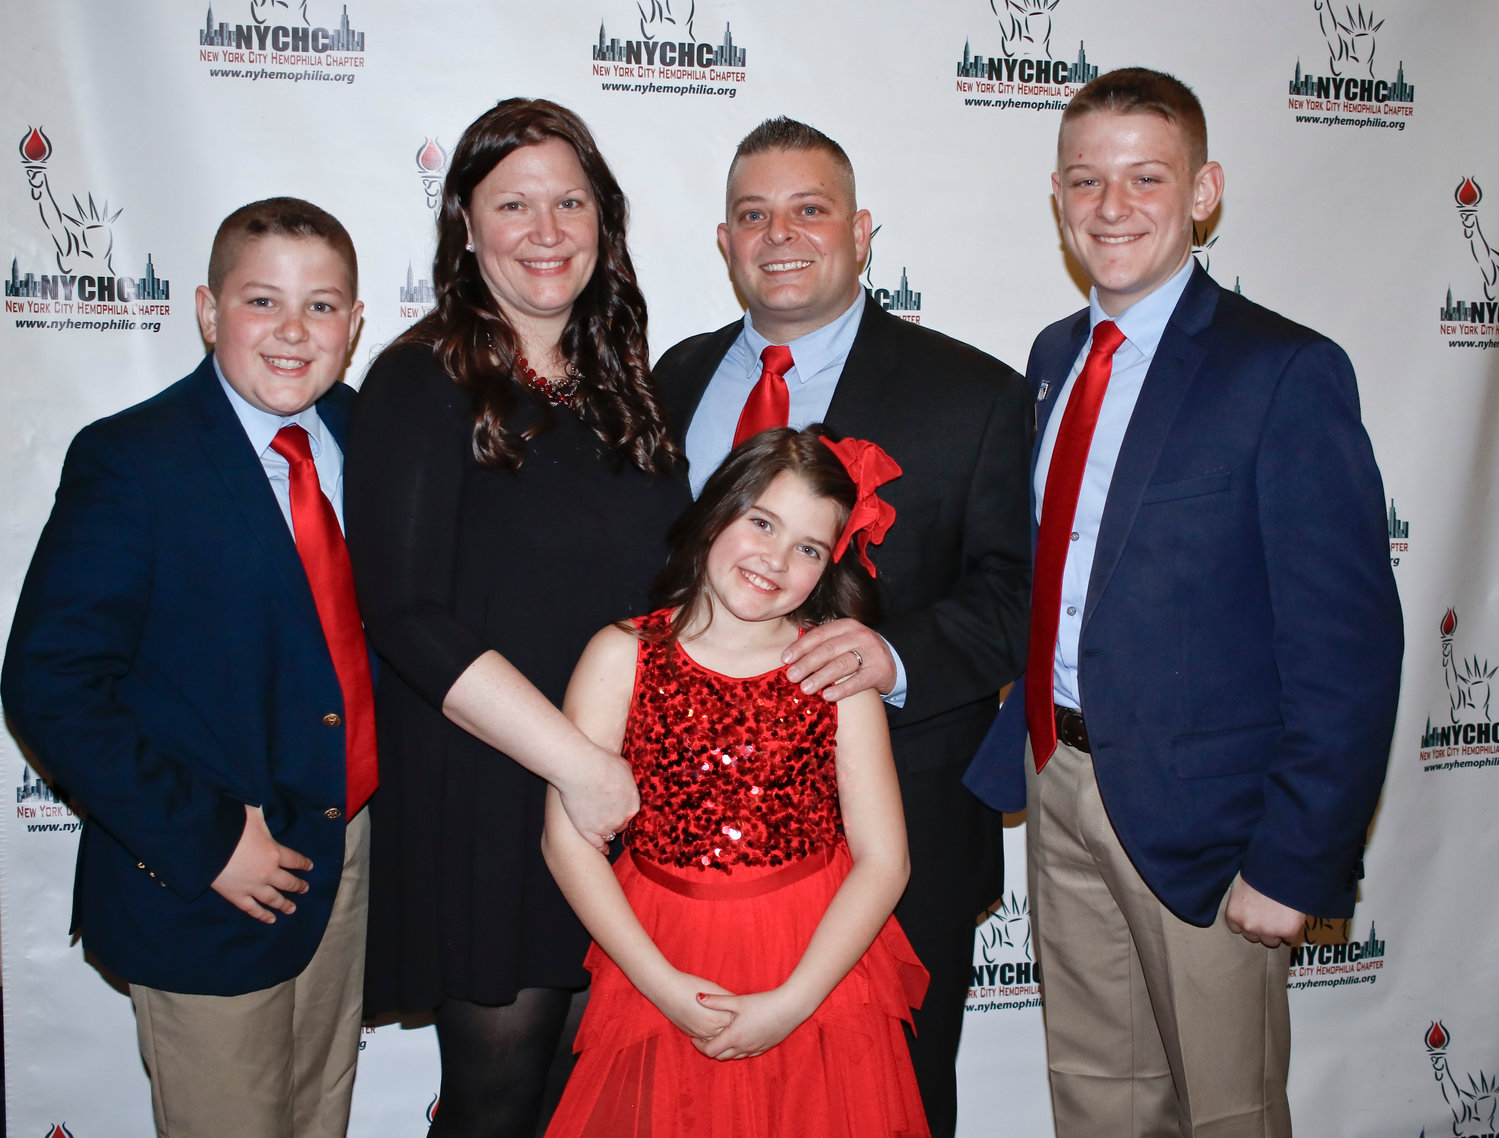 Christopher's Hemophilia Benefit was started 11 years ago in honor of Christopher, Ambrosio, right, who was born with the genetic bleeding disorder. Above, Christopher at the March 29 event with, from left, his brother, Connor, his mother, Kelly, his sister, Kelsey, and his father, Danny.